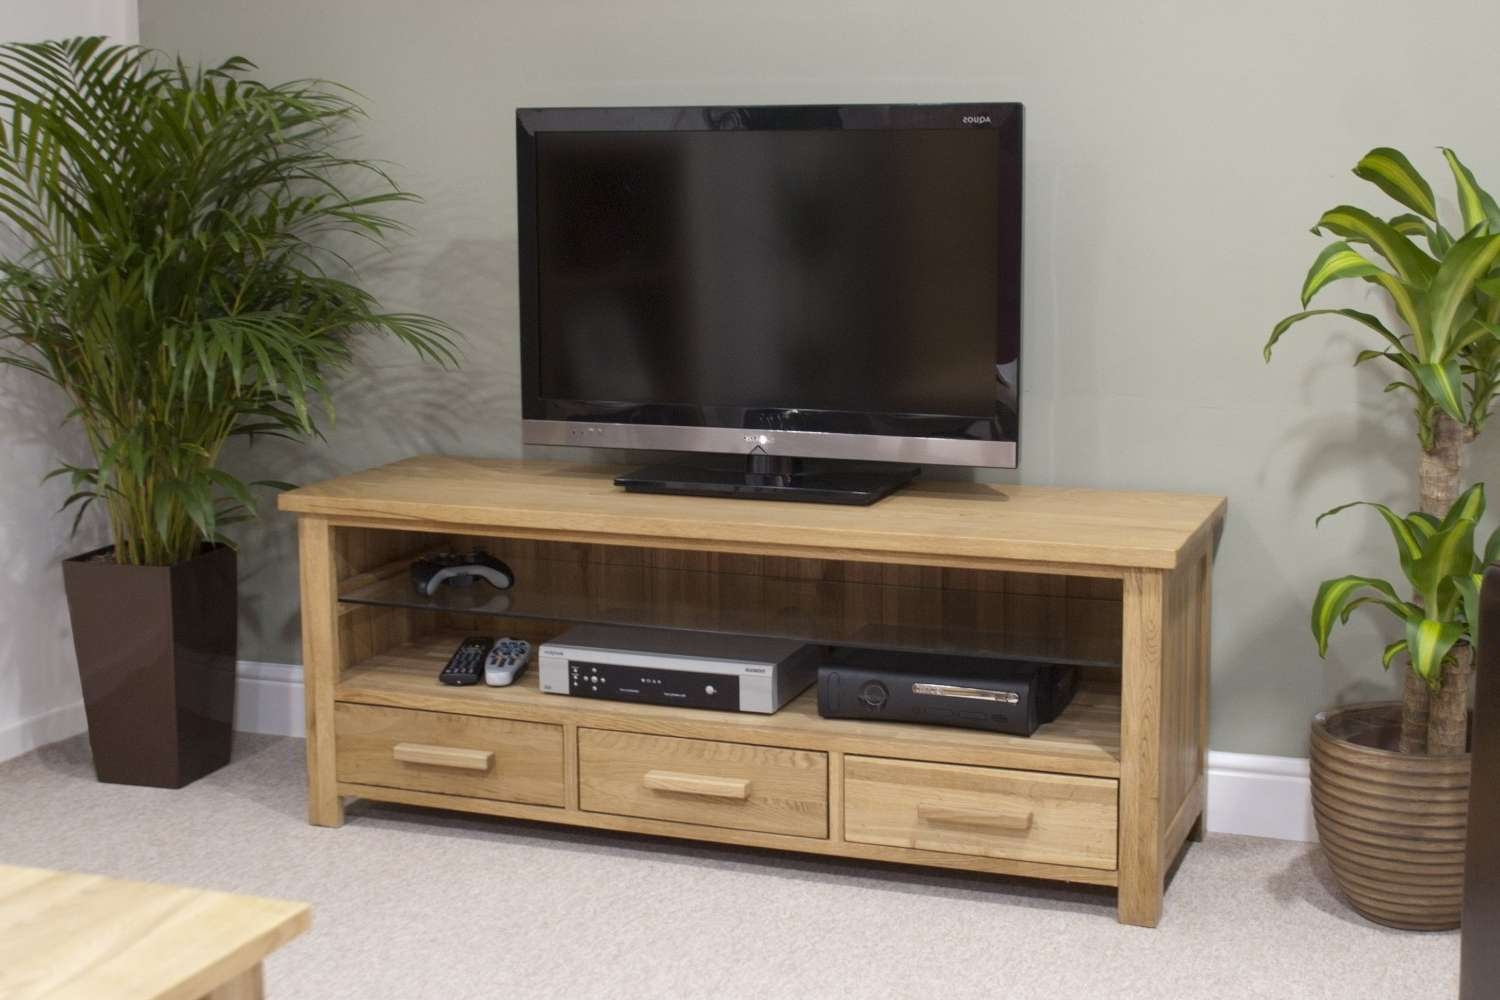 Eton Solid Oak Living Room Furniture Widescreen Tv Cabinet Stand Throughout Oak Tv Stands Furniture (View 5 of 15)